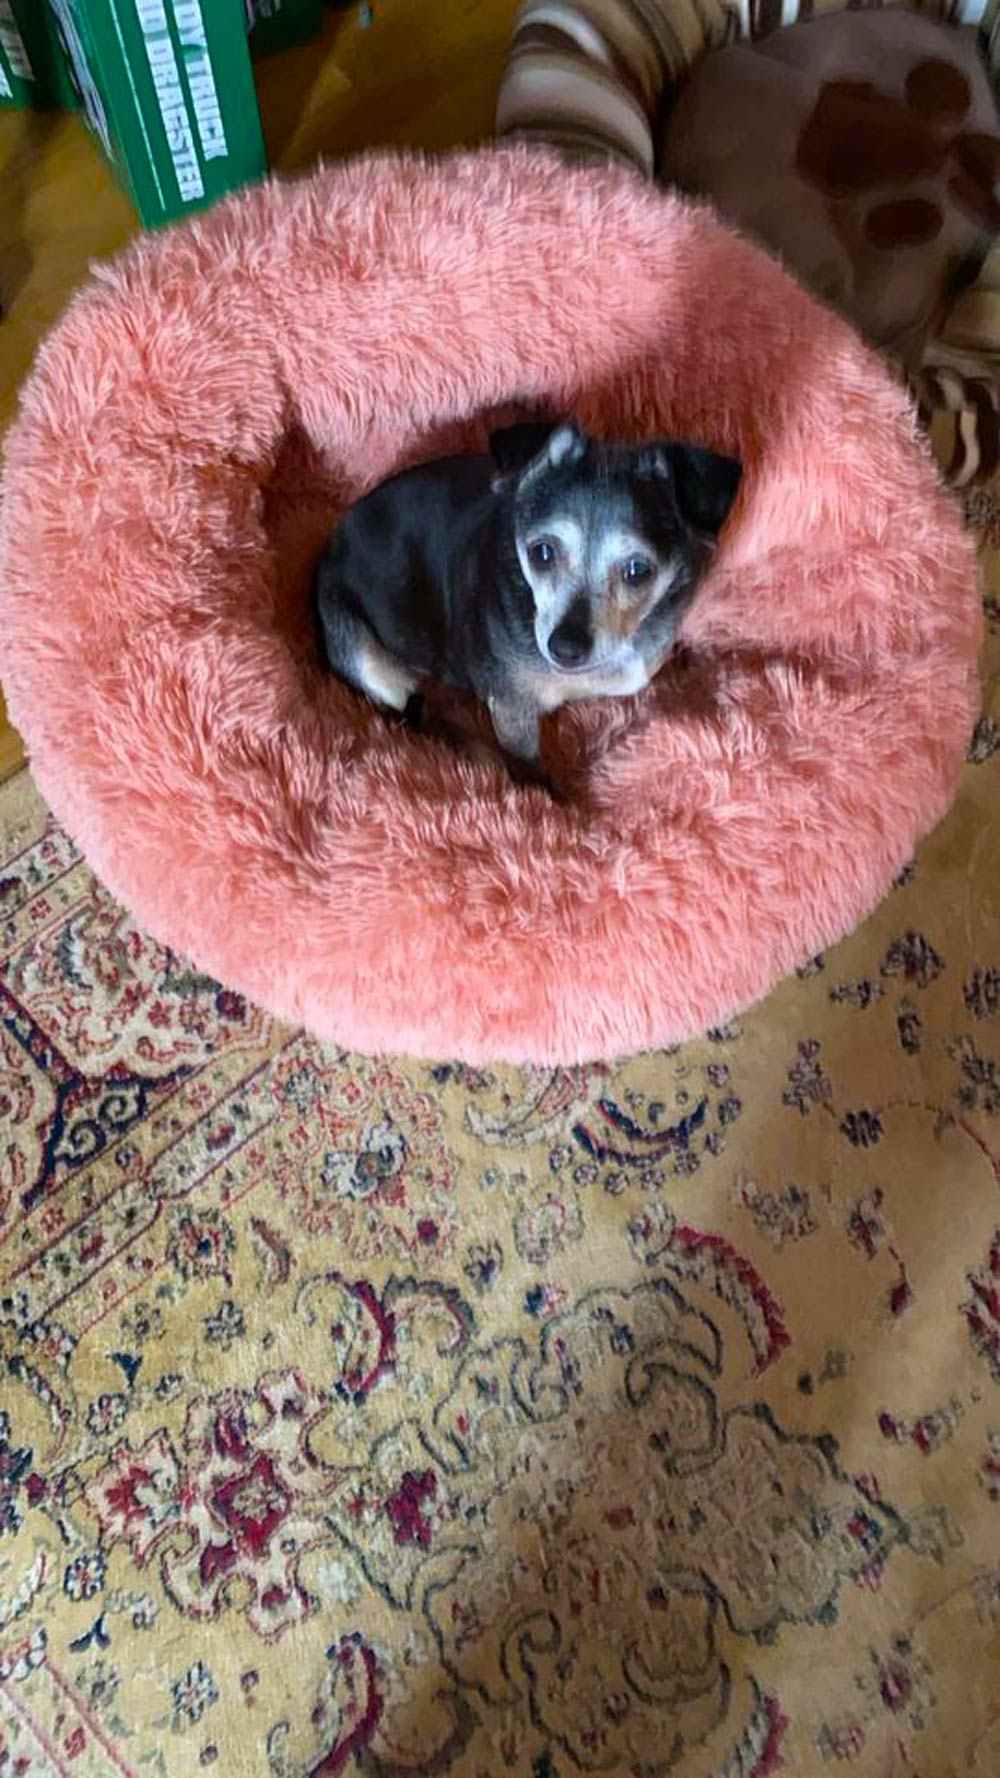 Meet Bruce M. of Wallingford, CT's frosty-faced, 15-year-old diva dog, Maddie.